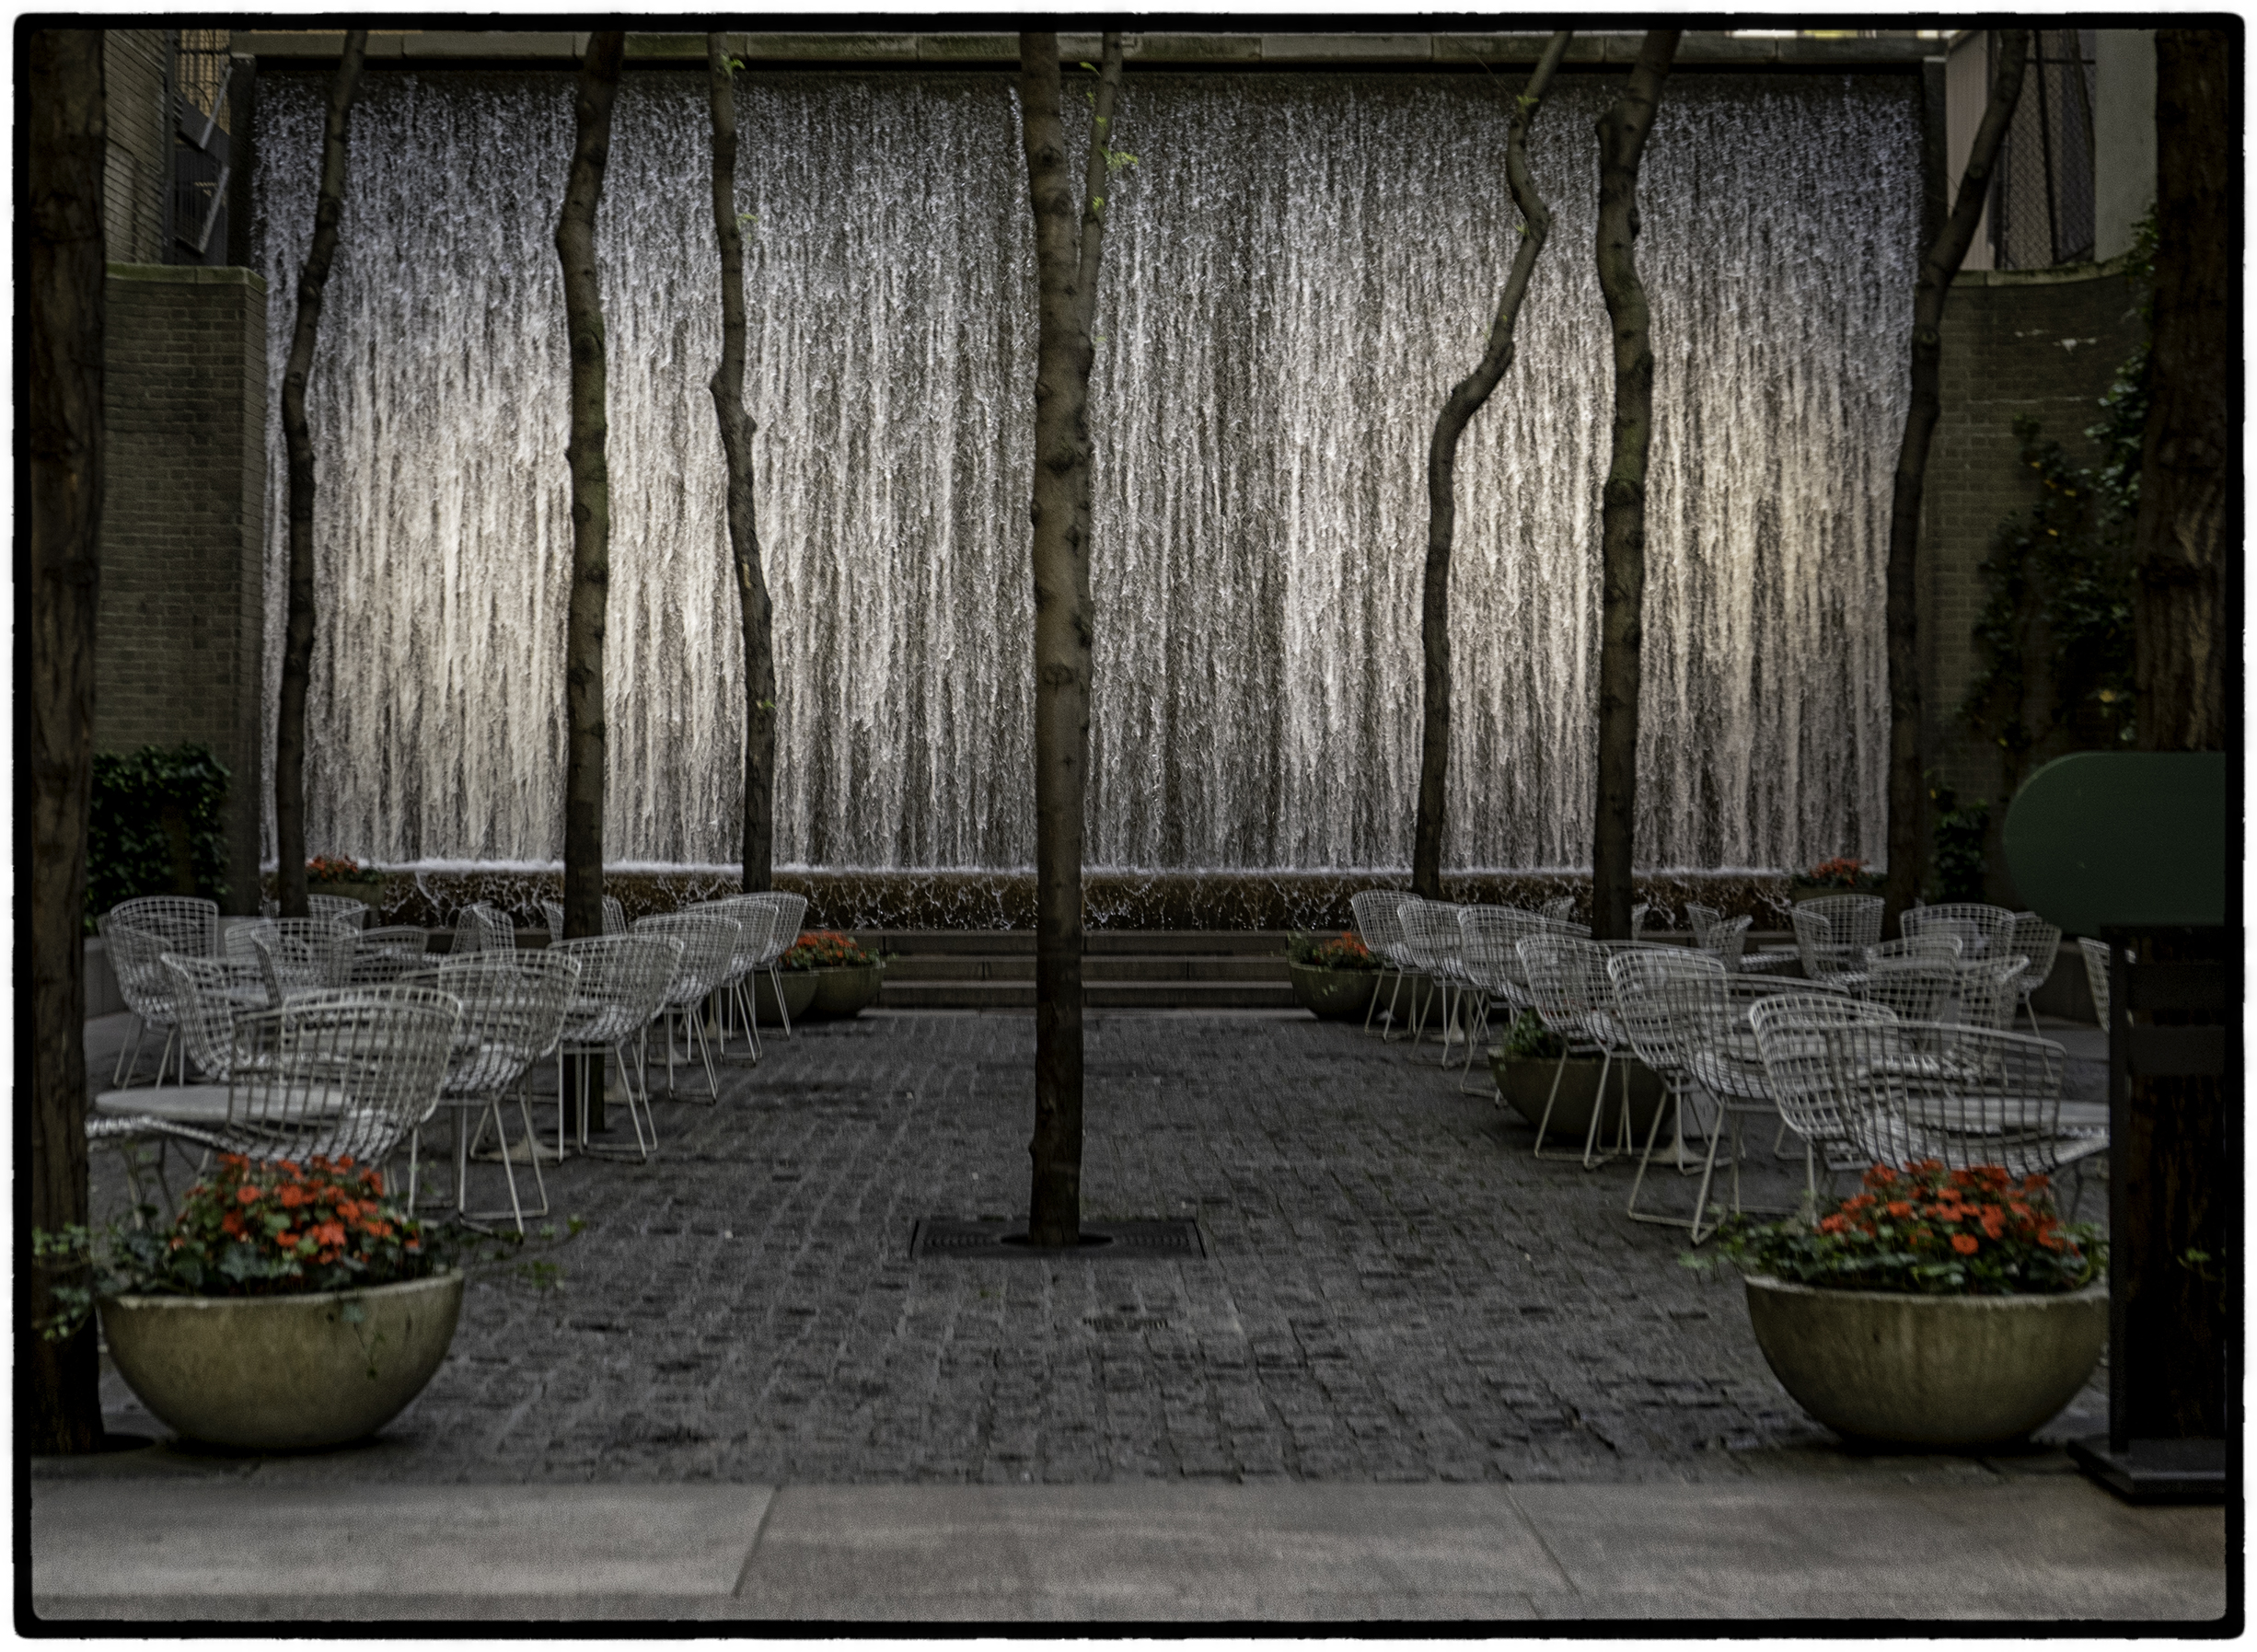 Restaurant and Waterfall, New York